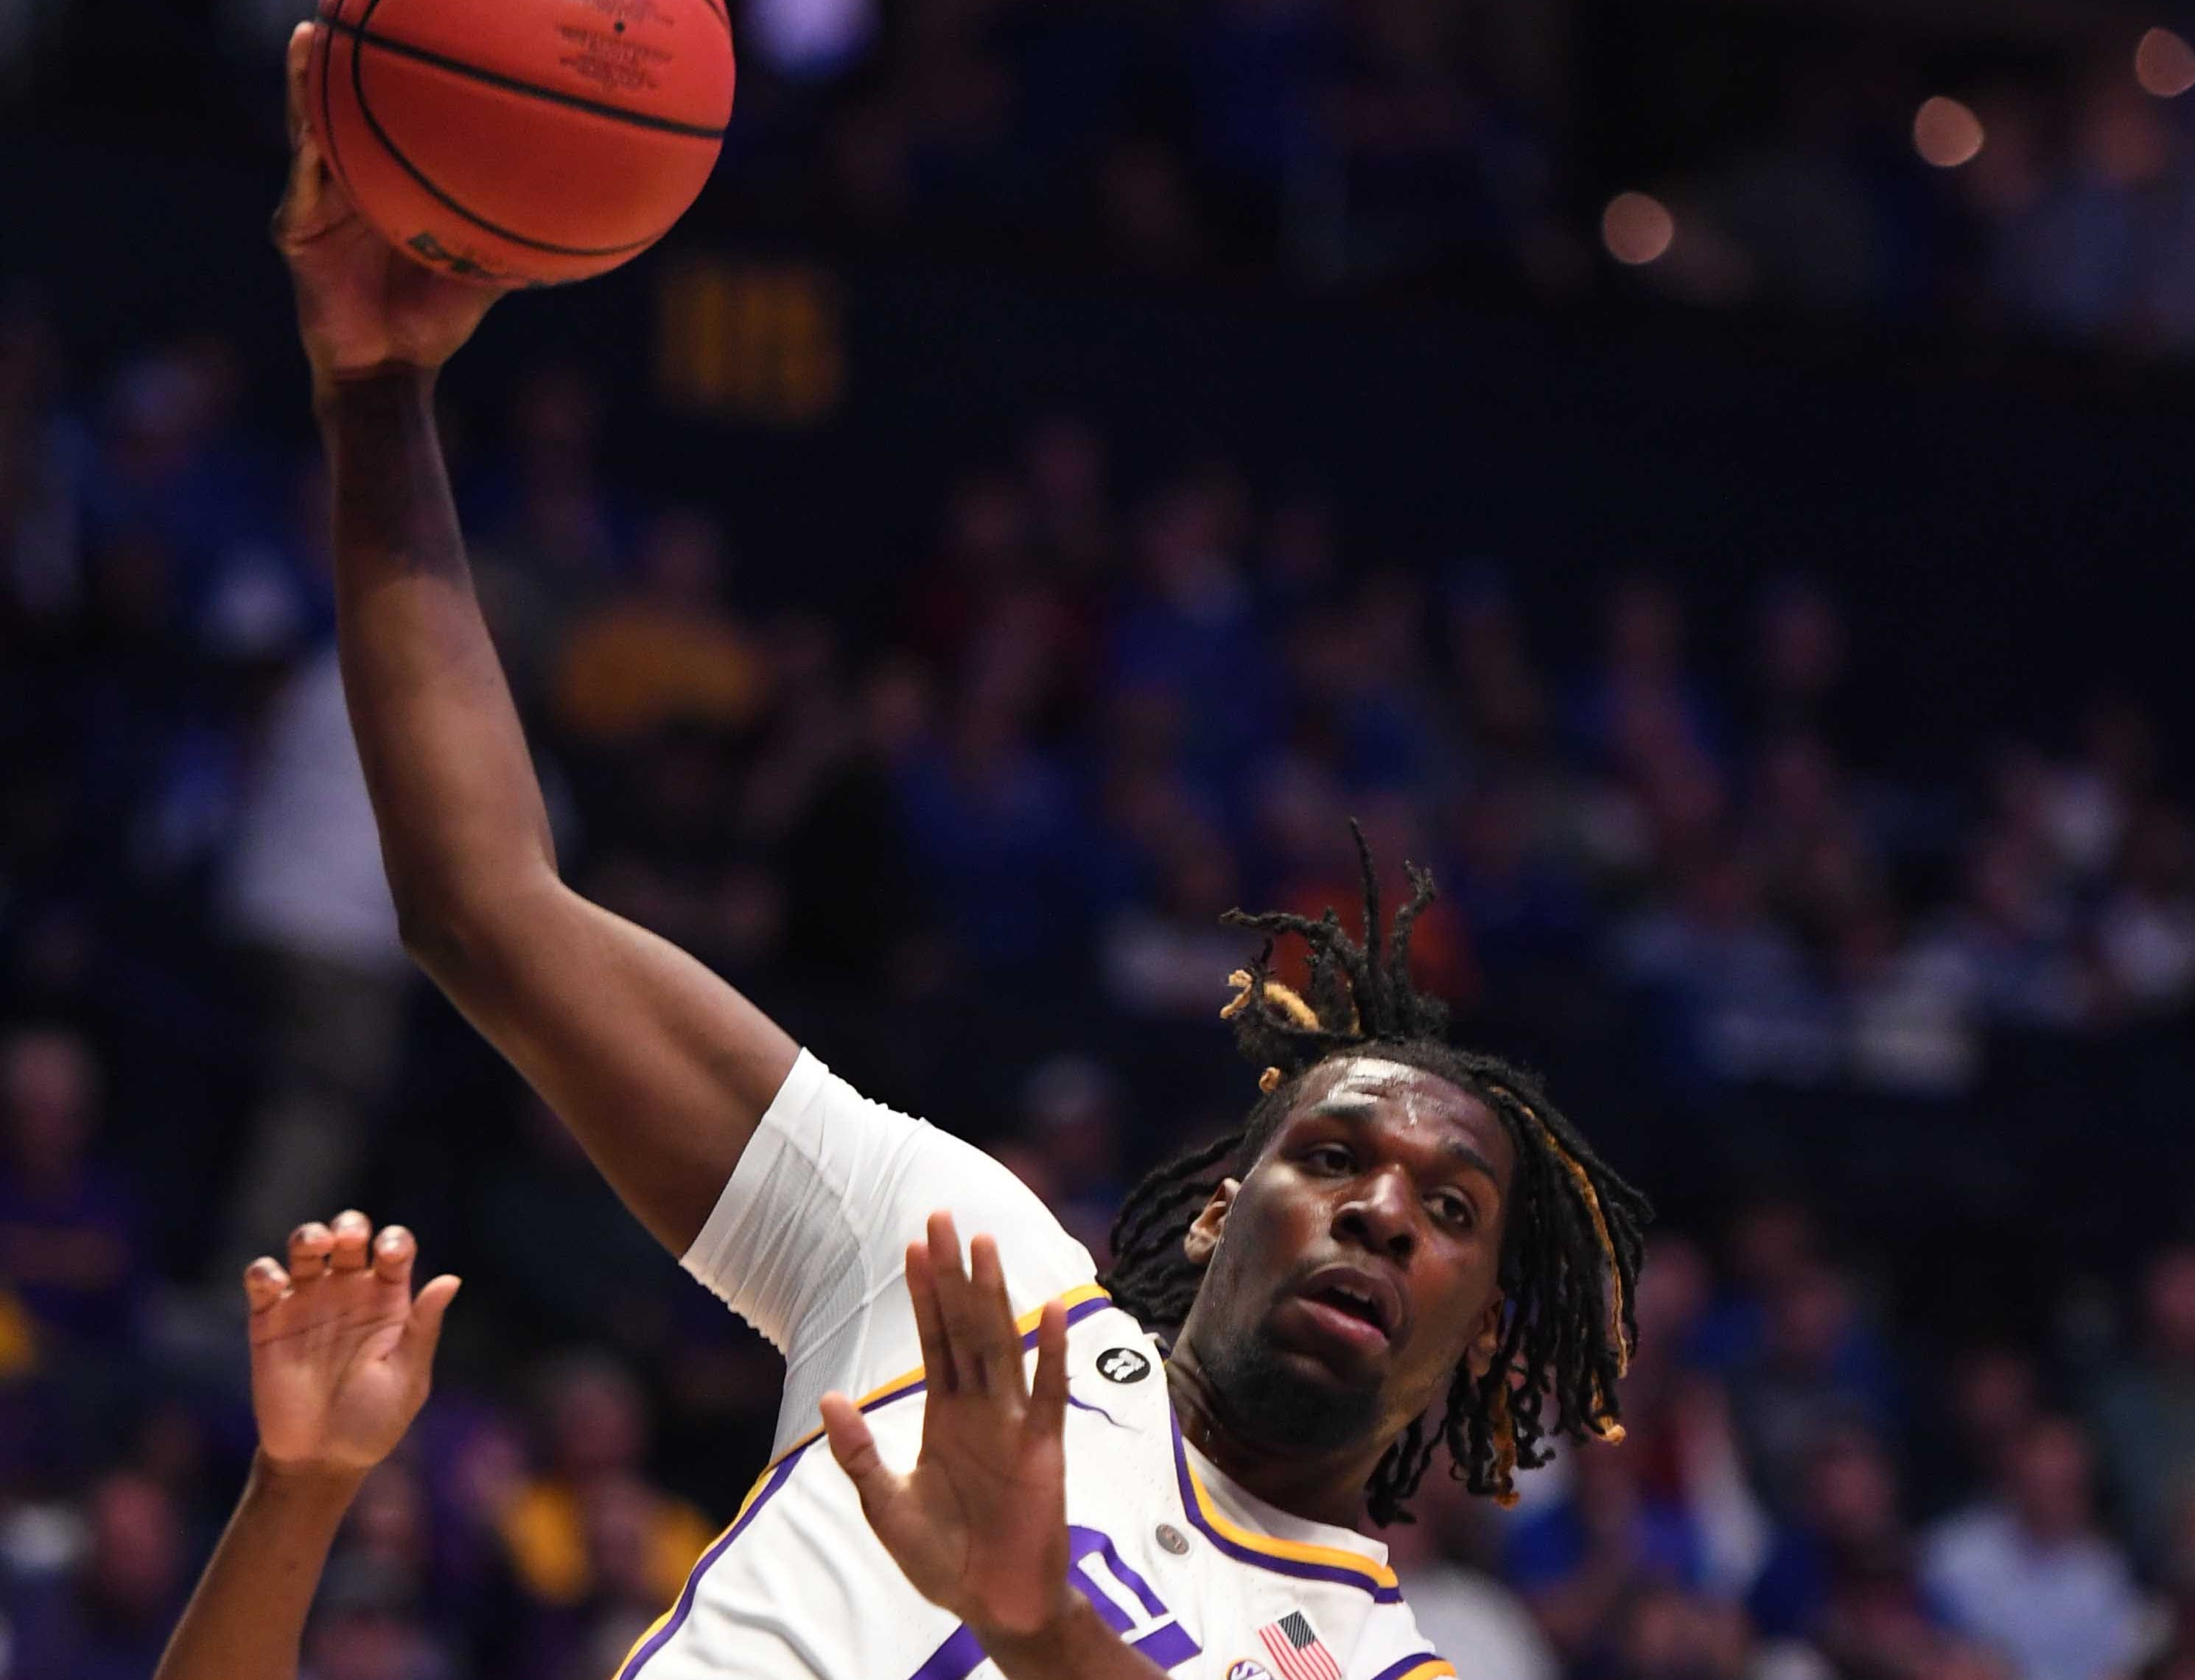 Mar 15, 2019; Nashville, TN, USA; LSU Tigers forward Naz Reid (0) grabs a rebound over Florida Gators center Kevarrius Hayes (13) during the first half of the SEC conference tournament at Bridgestone Arena. Mandatory Credit: Christopher Hanewinckel-USA TODAY Sports